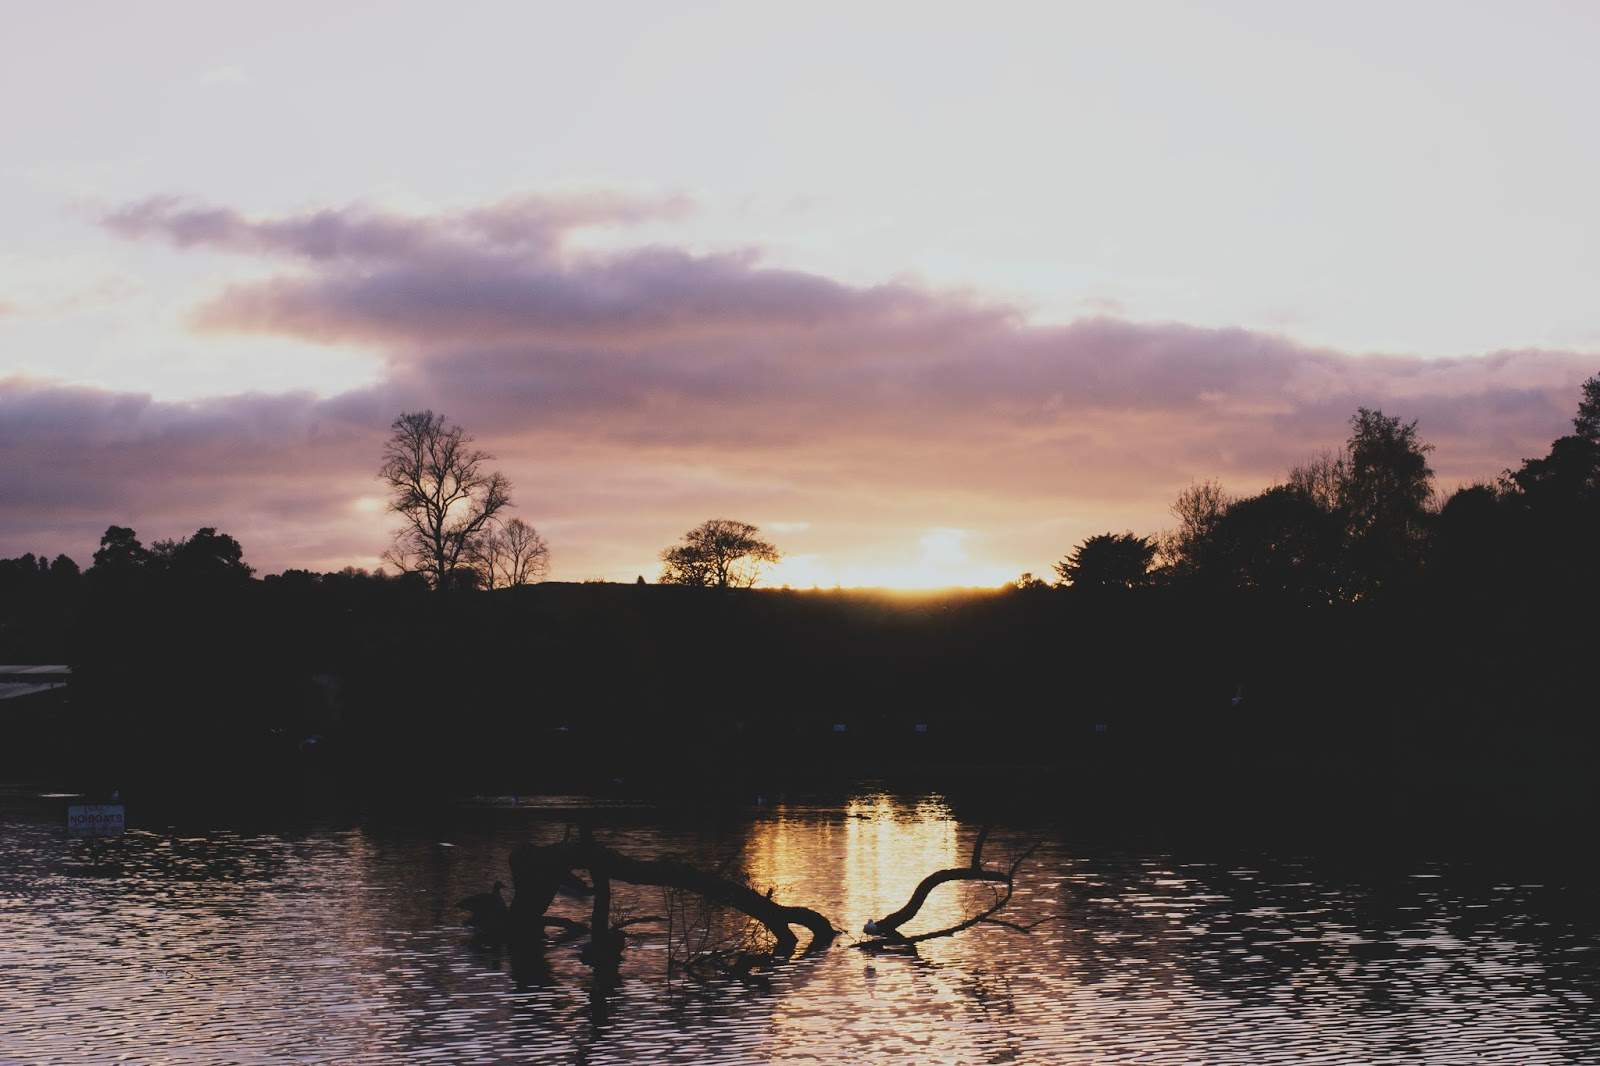 Sunset, Belper, Derbyshire, Belper River Gardens, Places to visit in Belper, Places to visit in Derbyshire, Katie Writes,